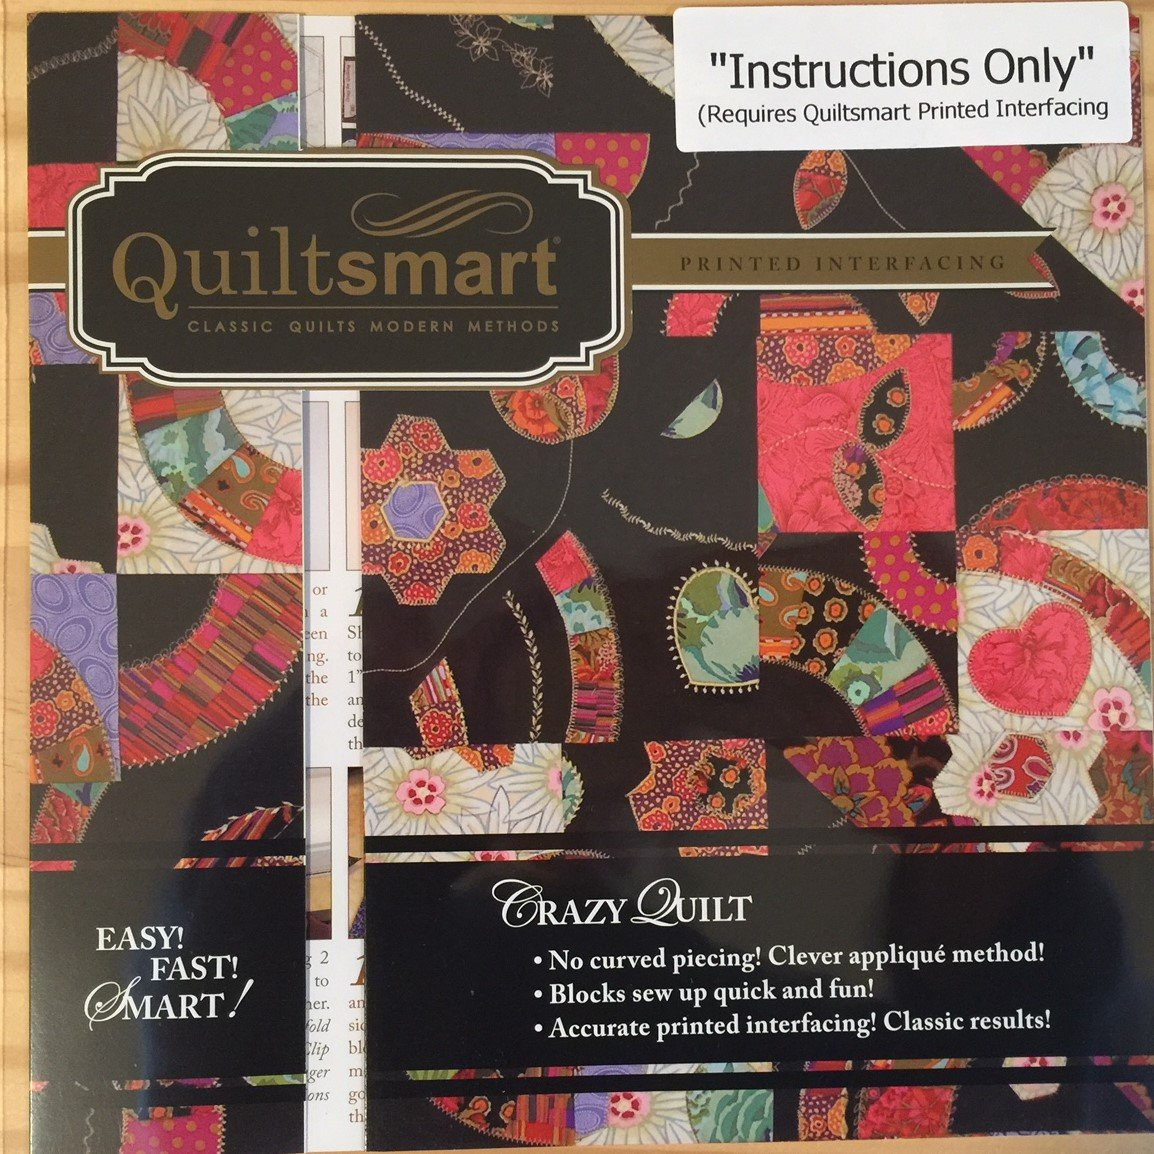 Crazy Quilt - Instructions Only